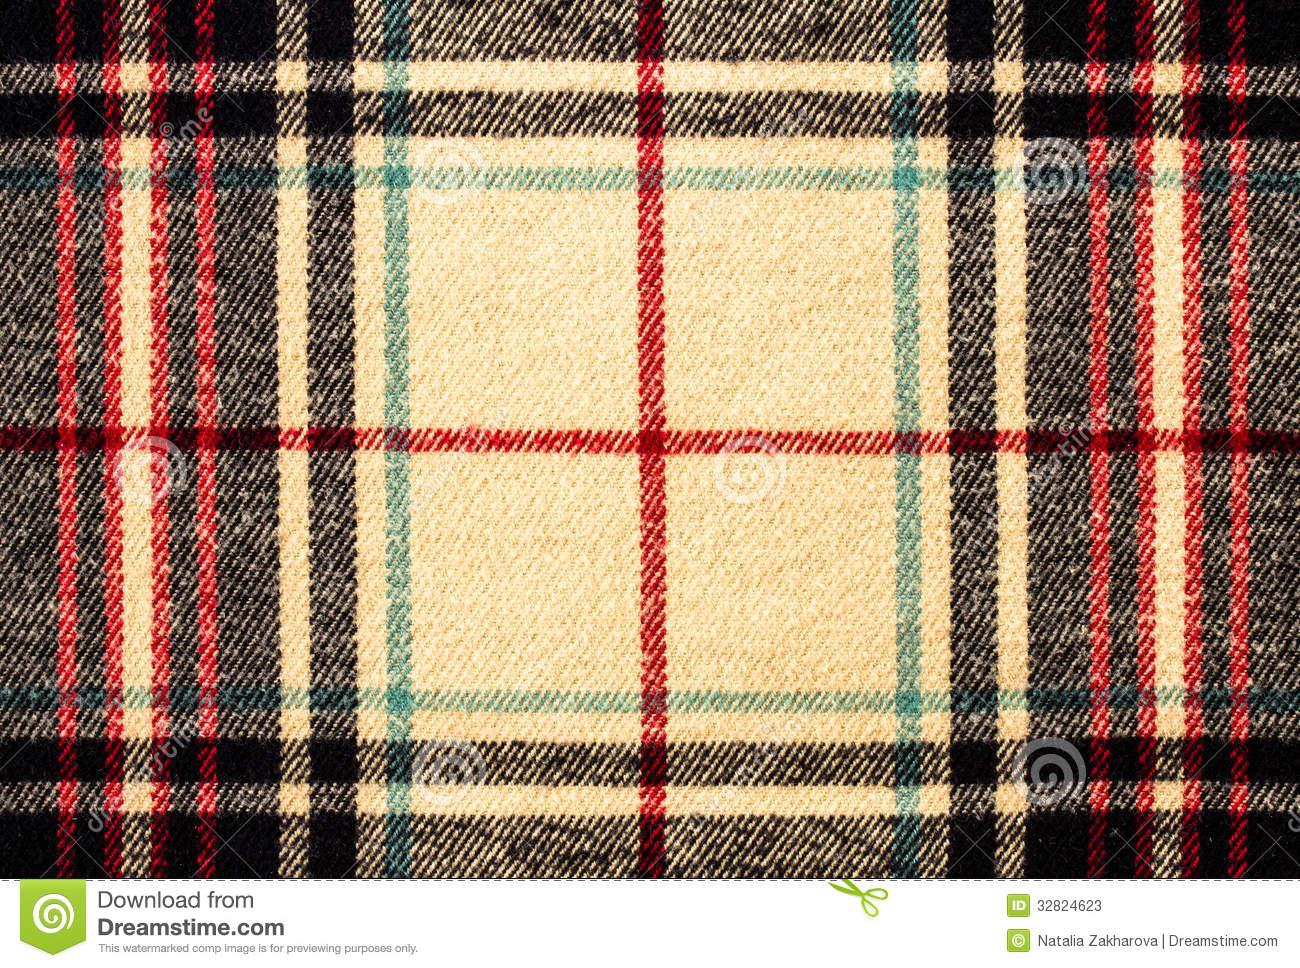 Tartan Plaid tartan plaid fabric pattern background textured stock image